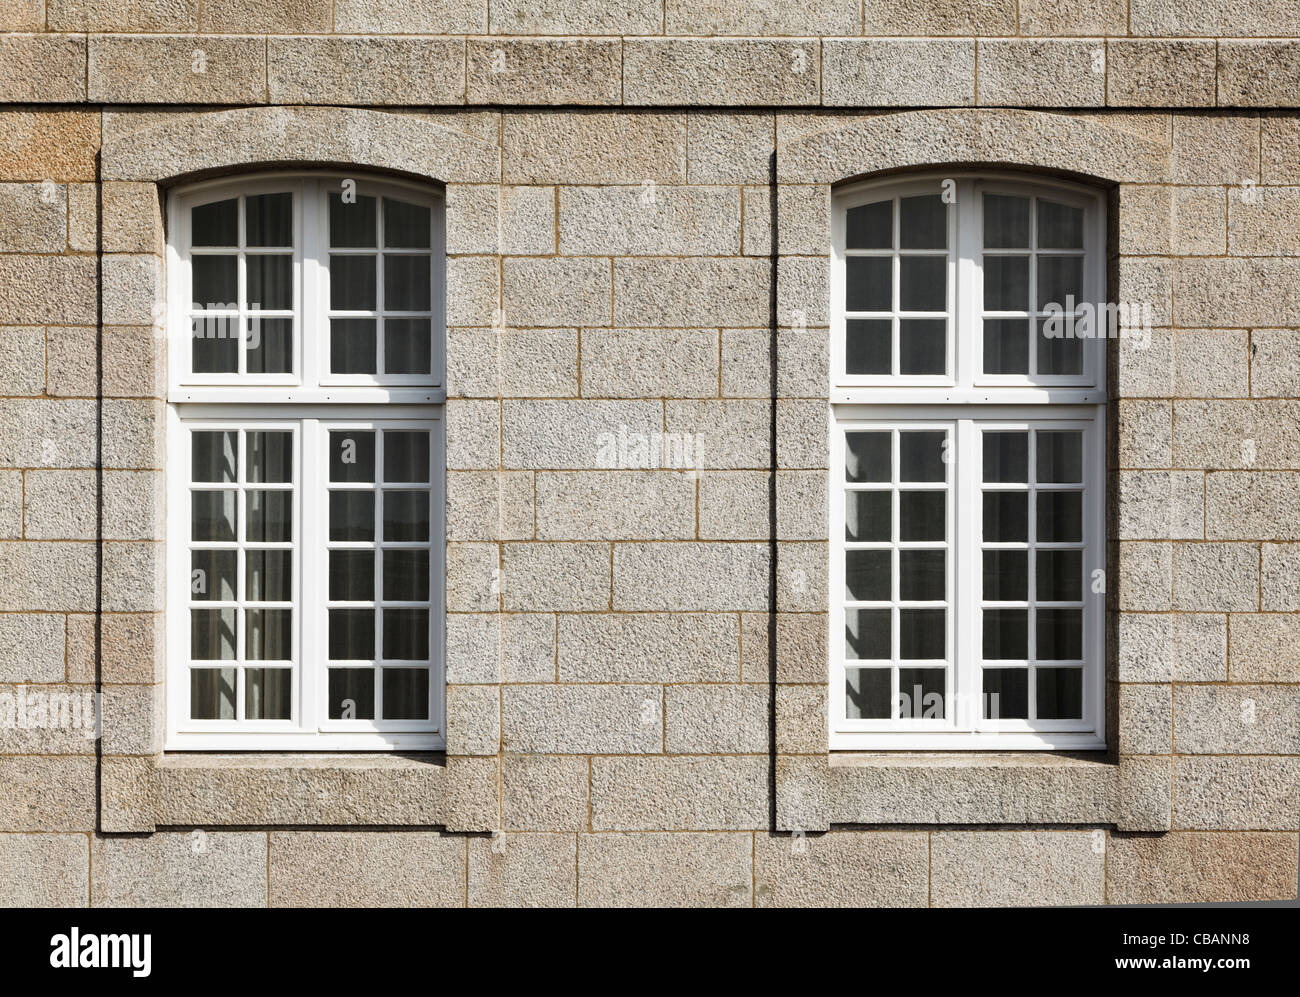 Two windows in a large old house - Stock Image